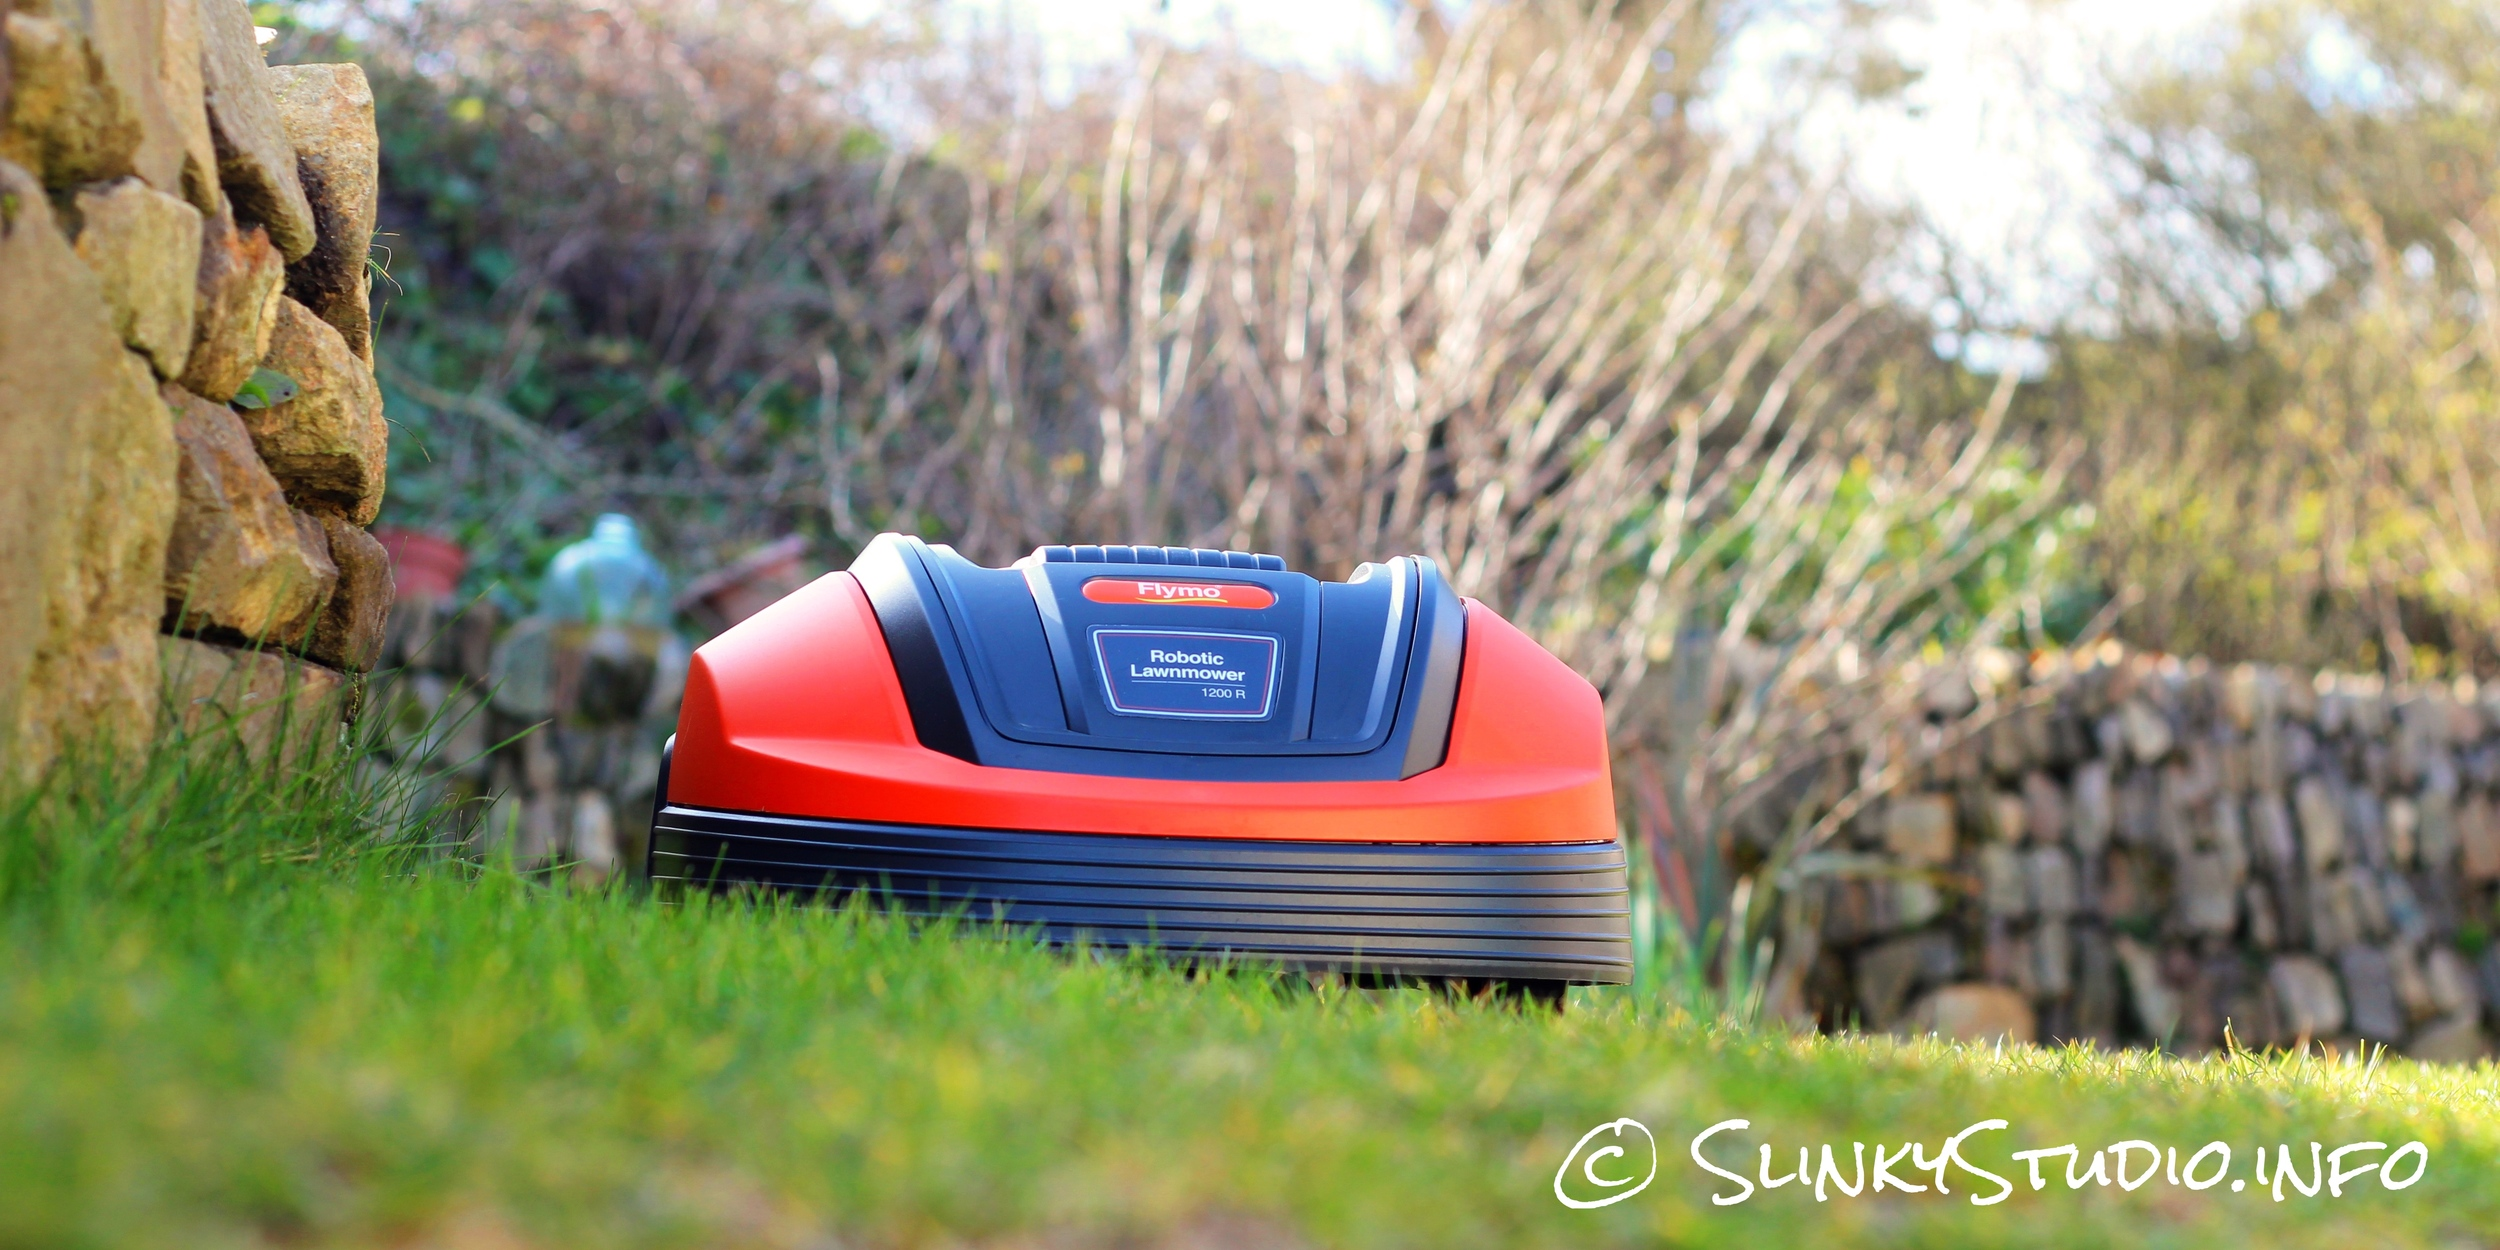 Flymo Robotic 1200R Lawnmower Ground View.jpg